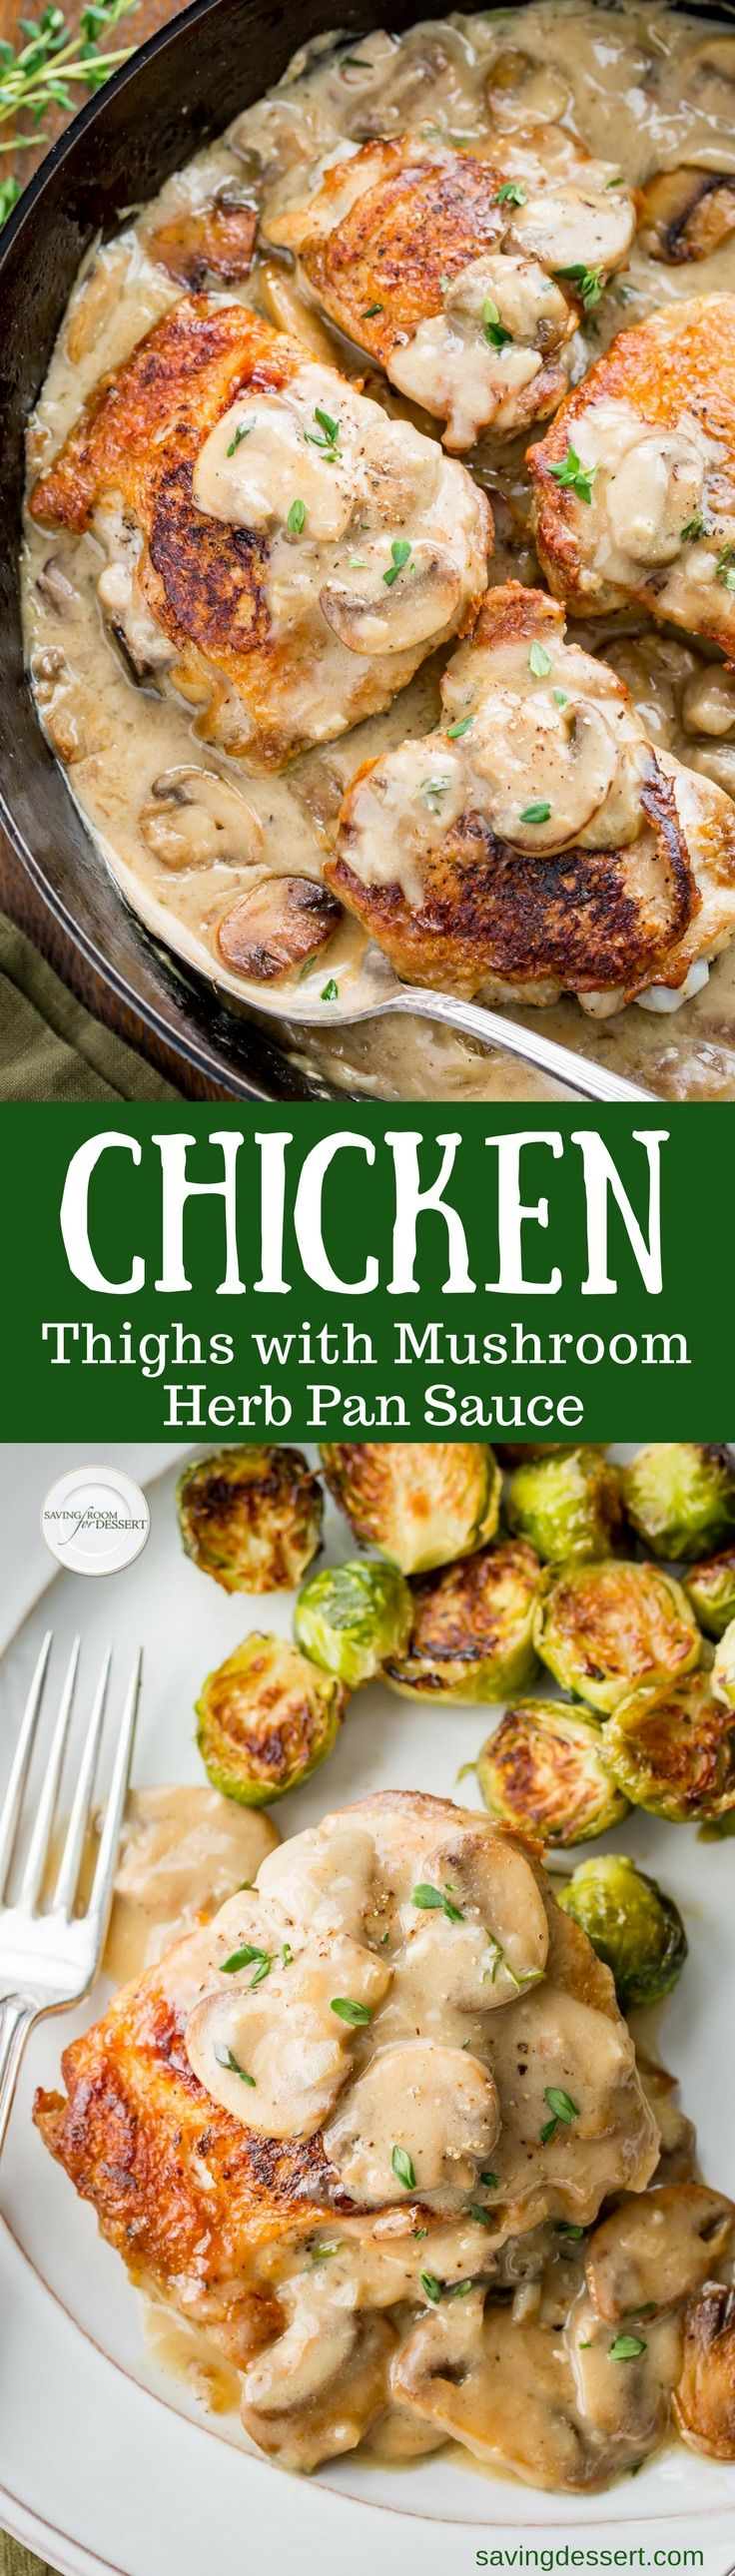 Chicken Thighs with Mushroom Herb Pan Sauce - sub olive oil